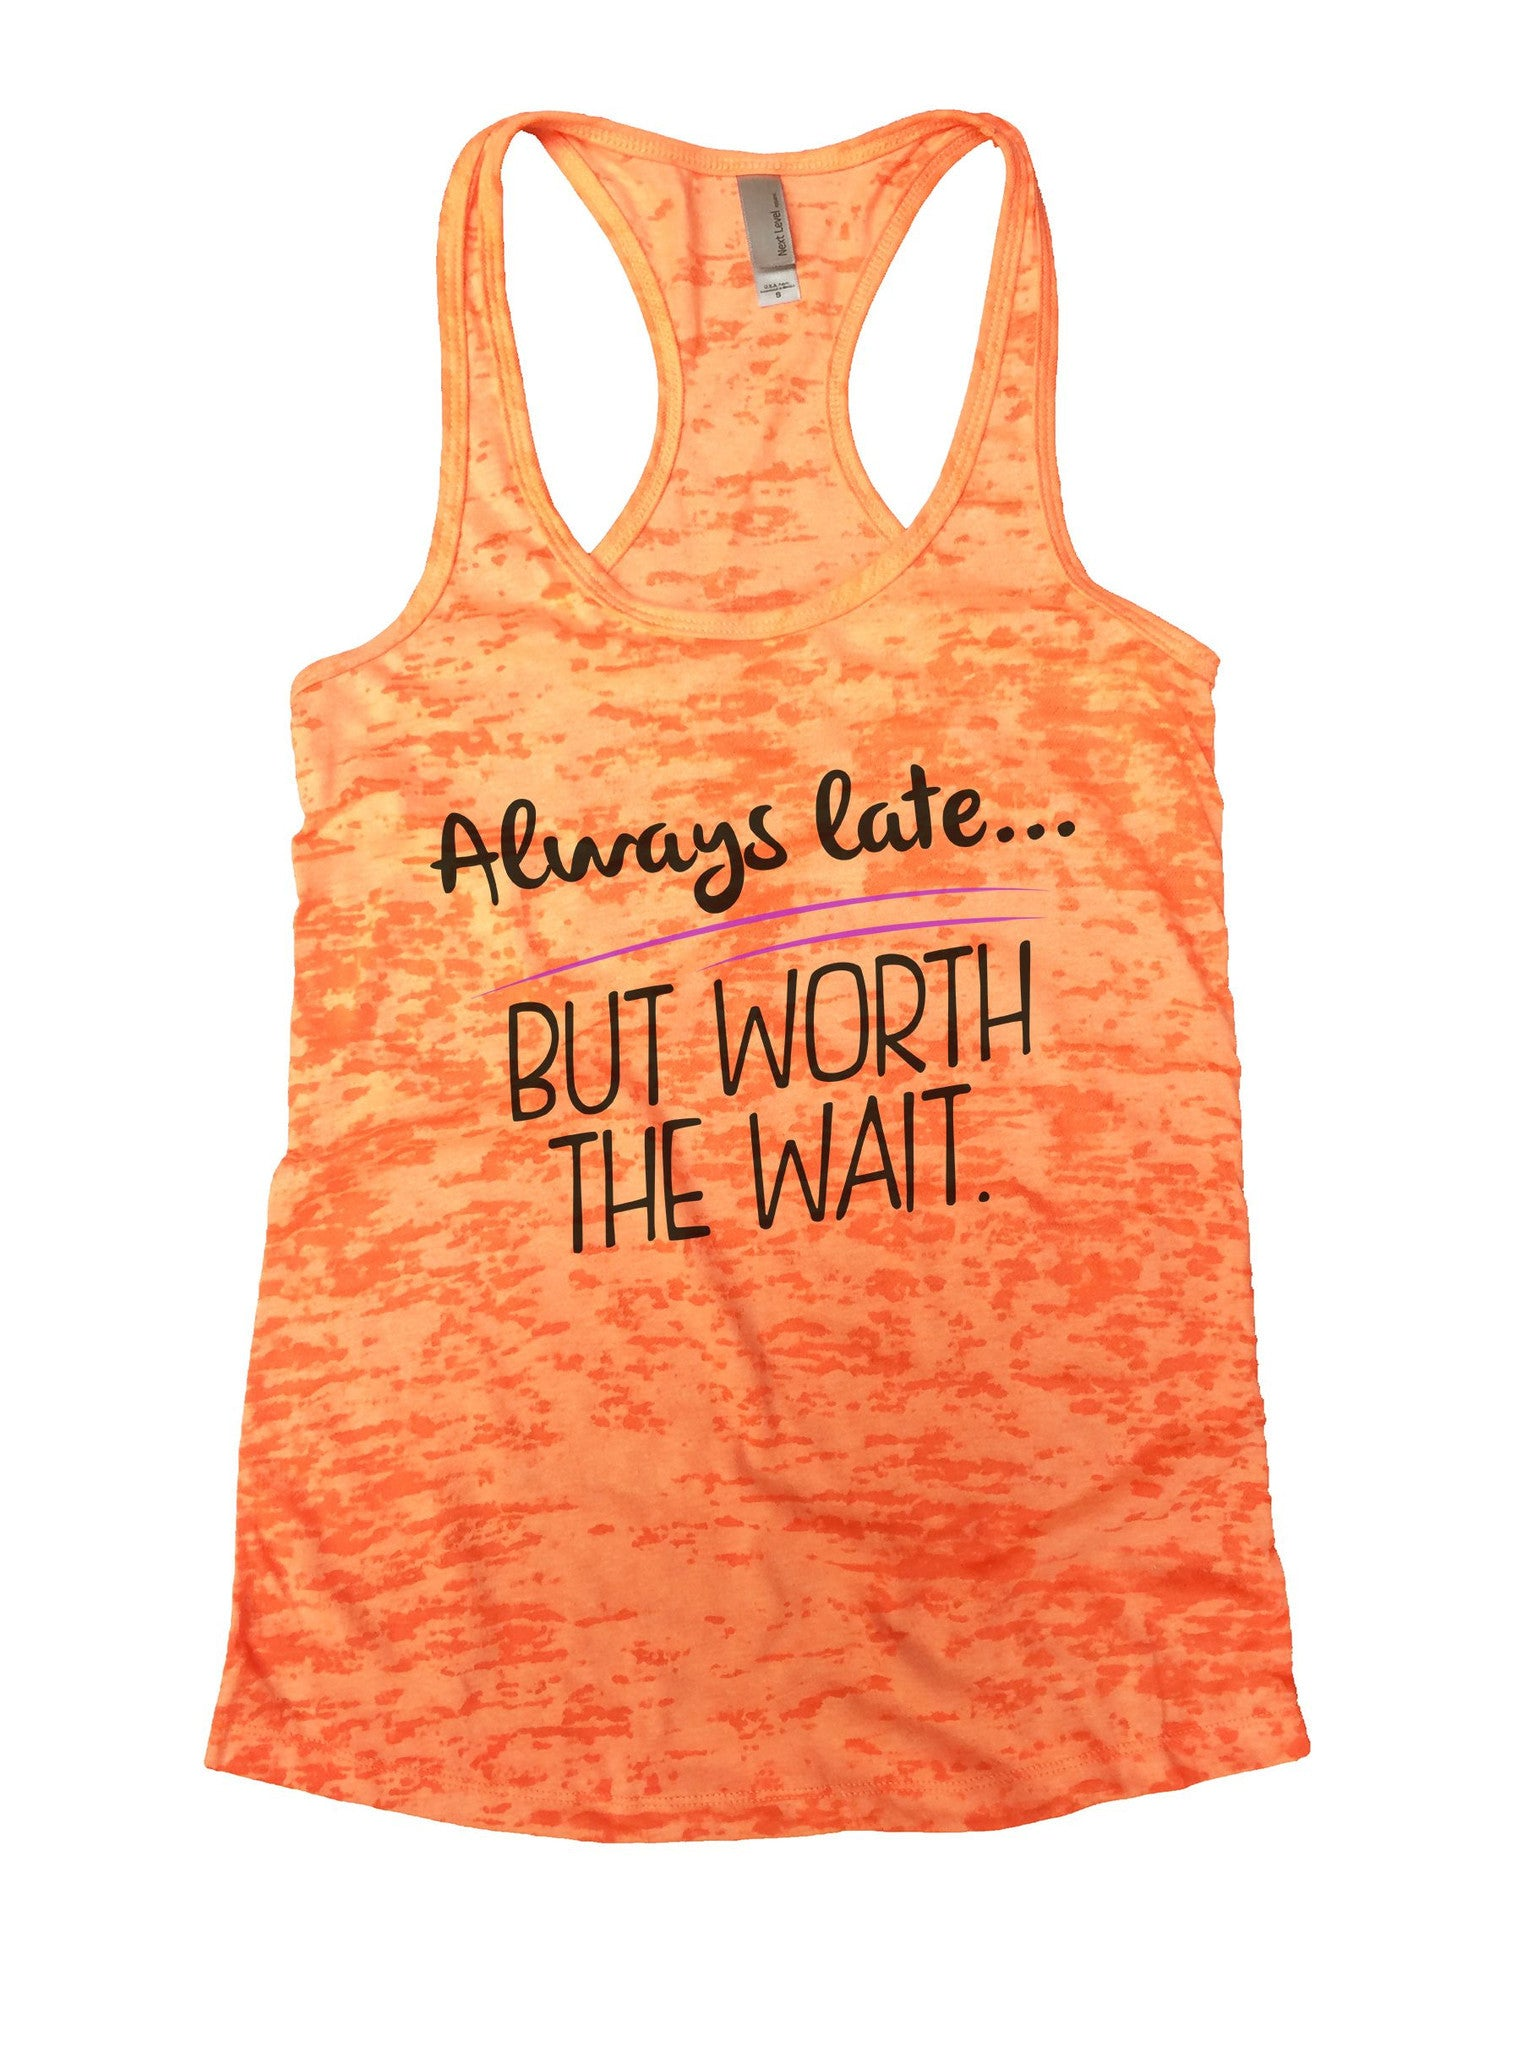 Always Late... But Worth The Wait Burnout Tank Top By BurnoutTankTops.com - 1069 - Funny Shirts Tank Tops Burnouts and Triblends  - 3